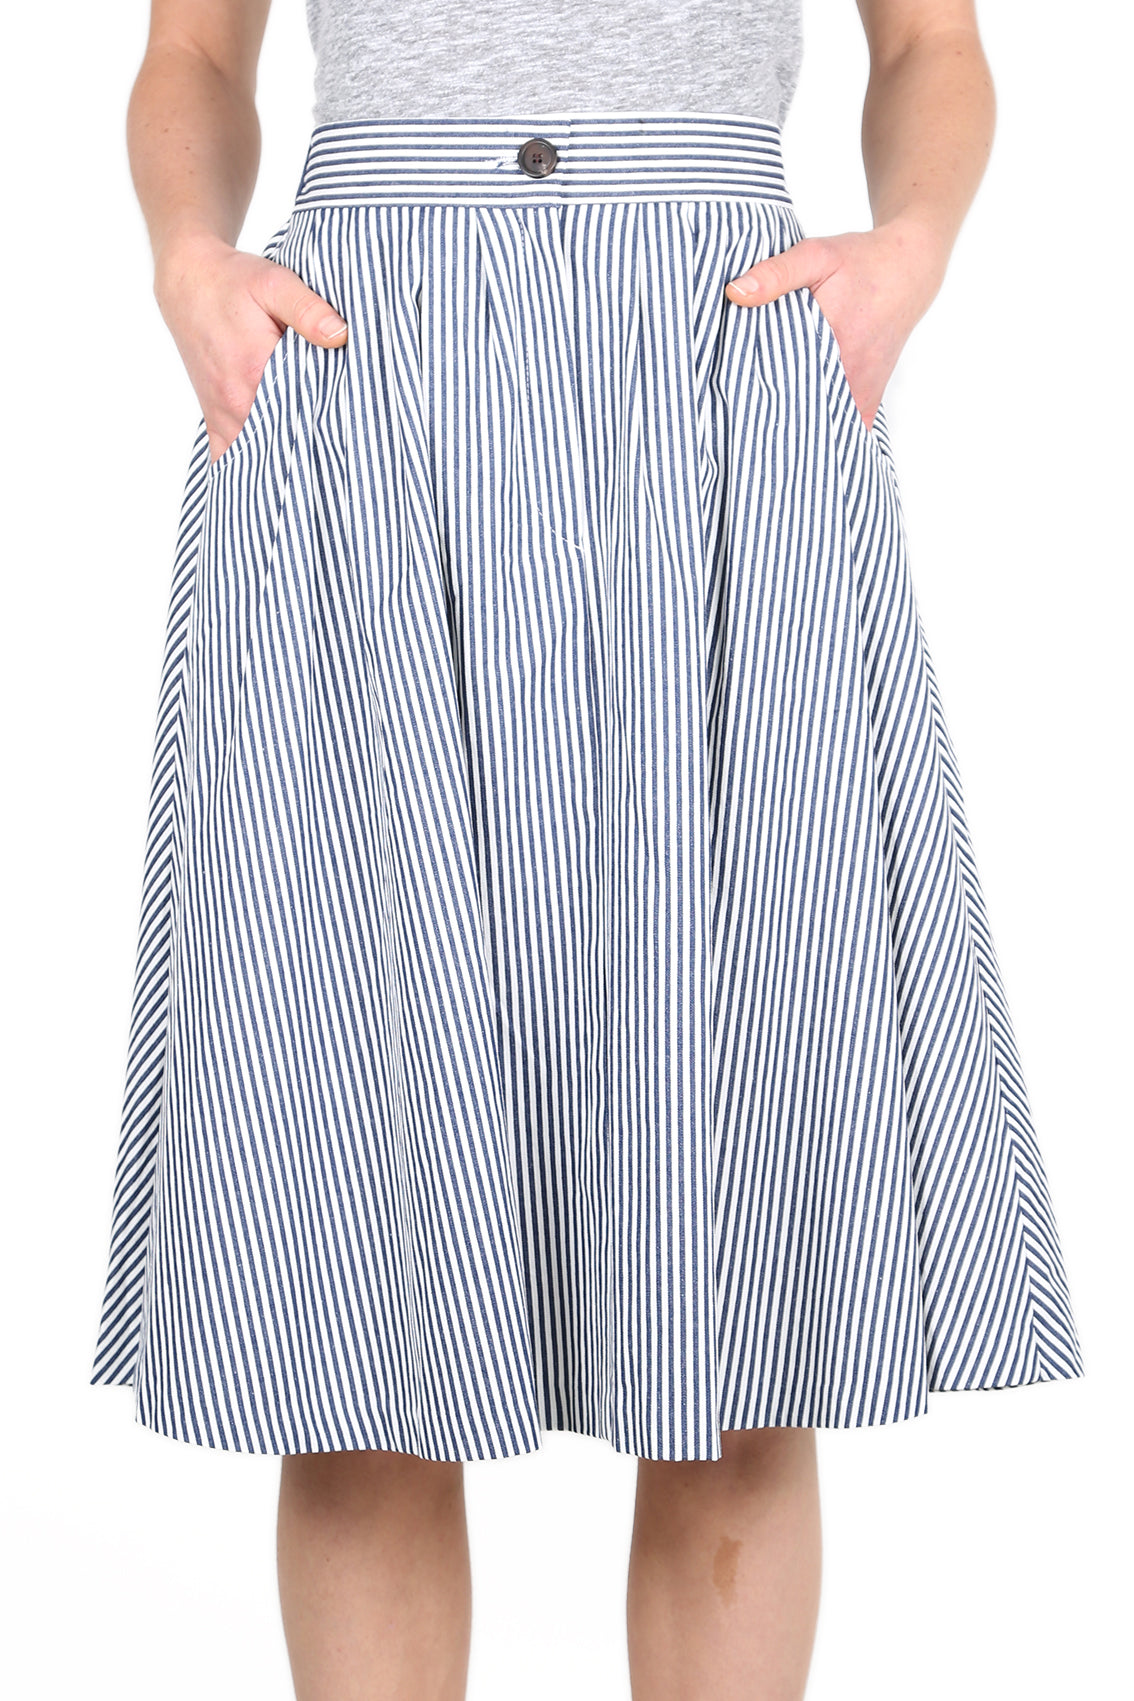 Sailor Stripes  Skirt